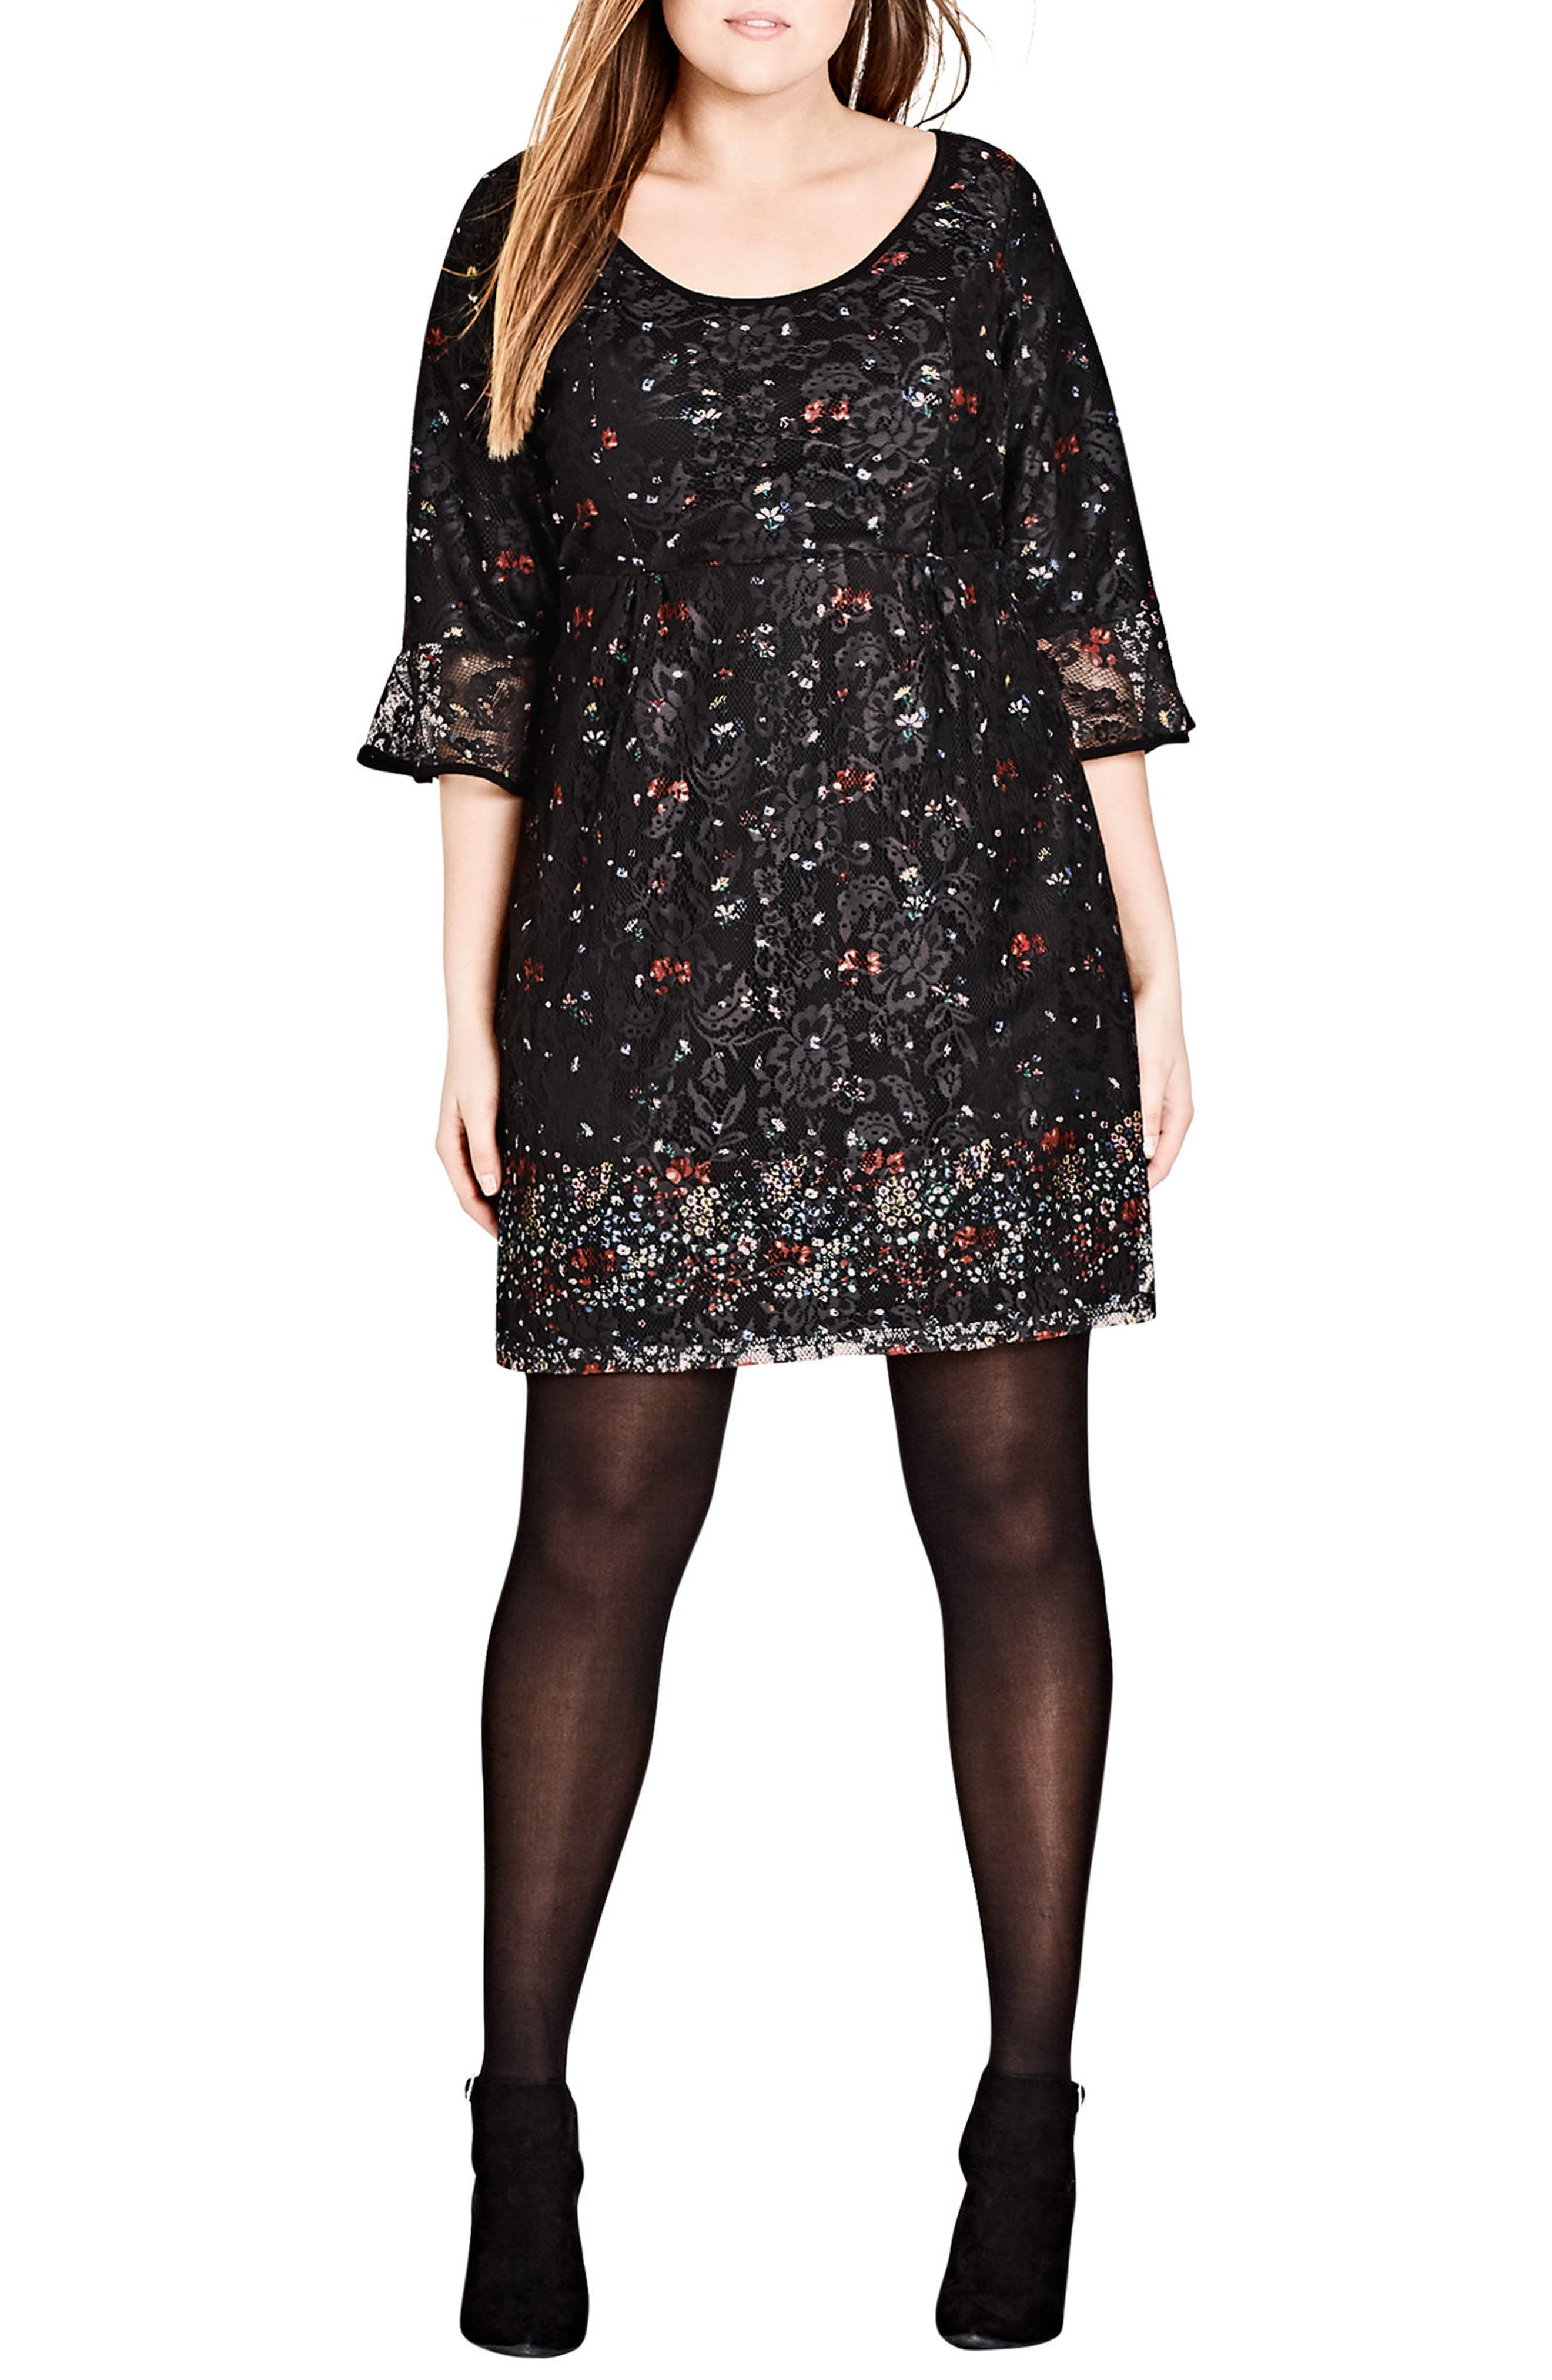 Alternate Image 1 Selected - City Chic Floral Fields Scoop Neck Lace Dress (Plus Size)